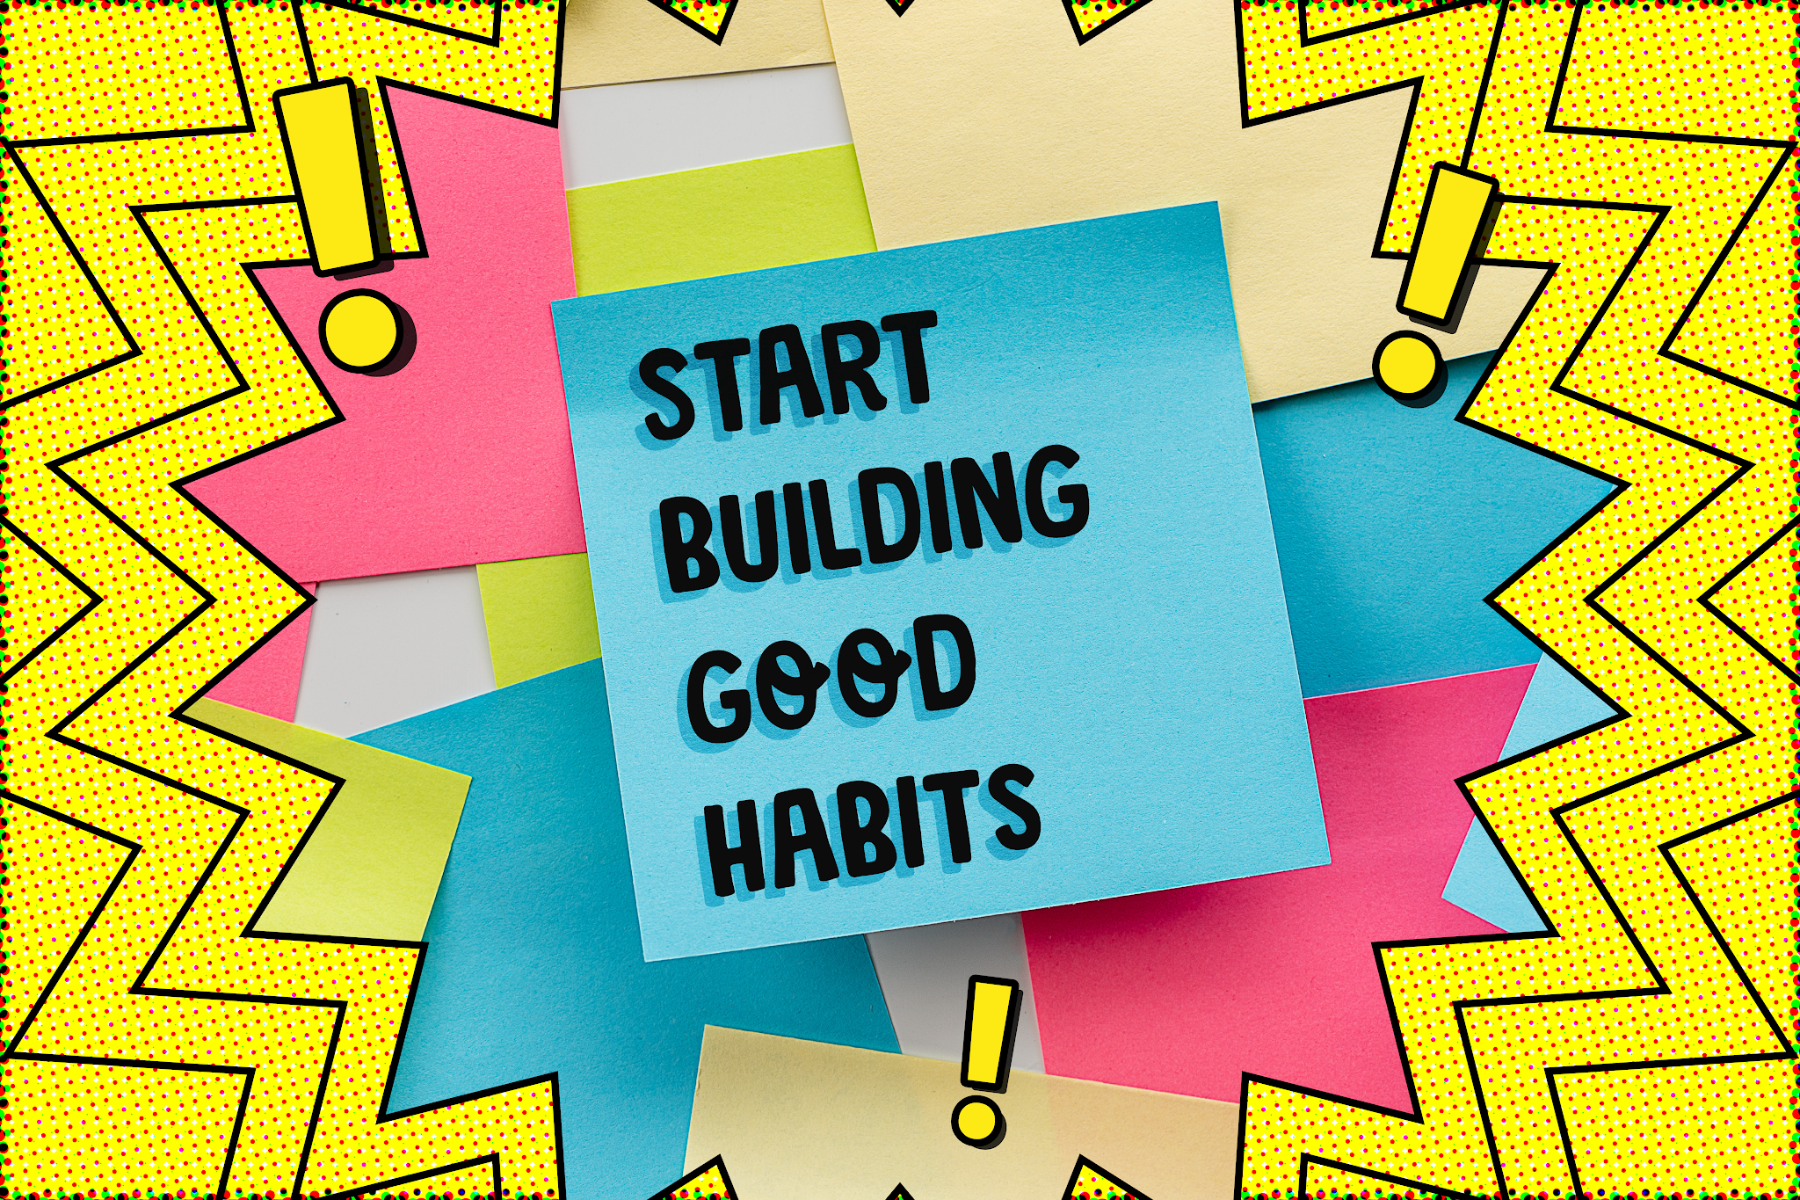 Post-it note about starting to build good habits